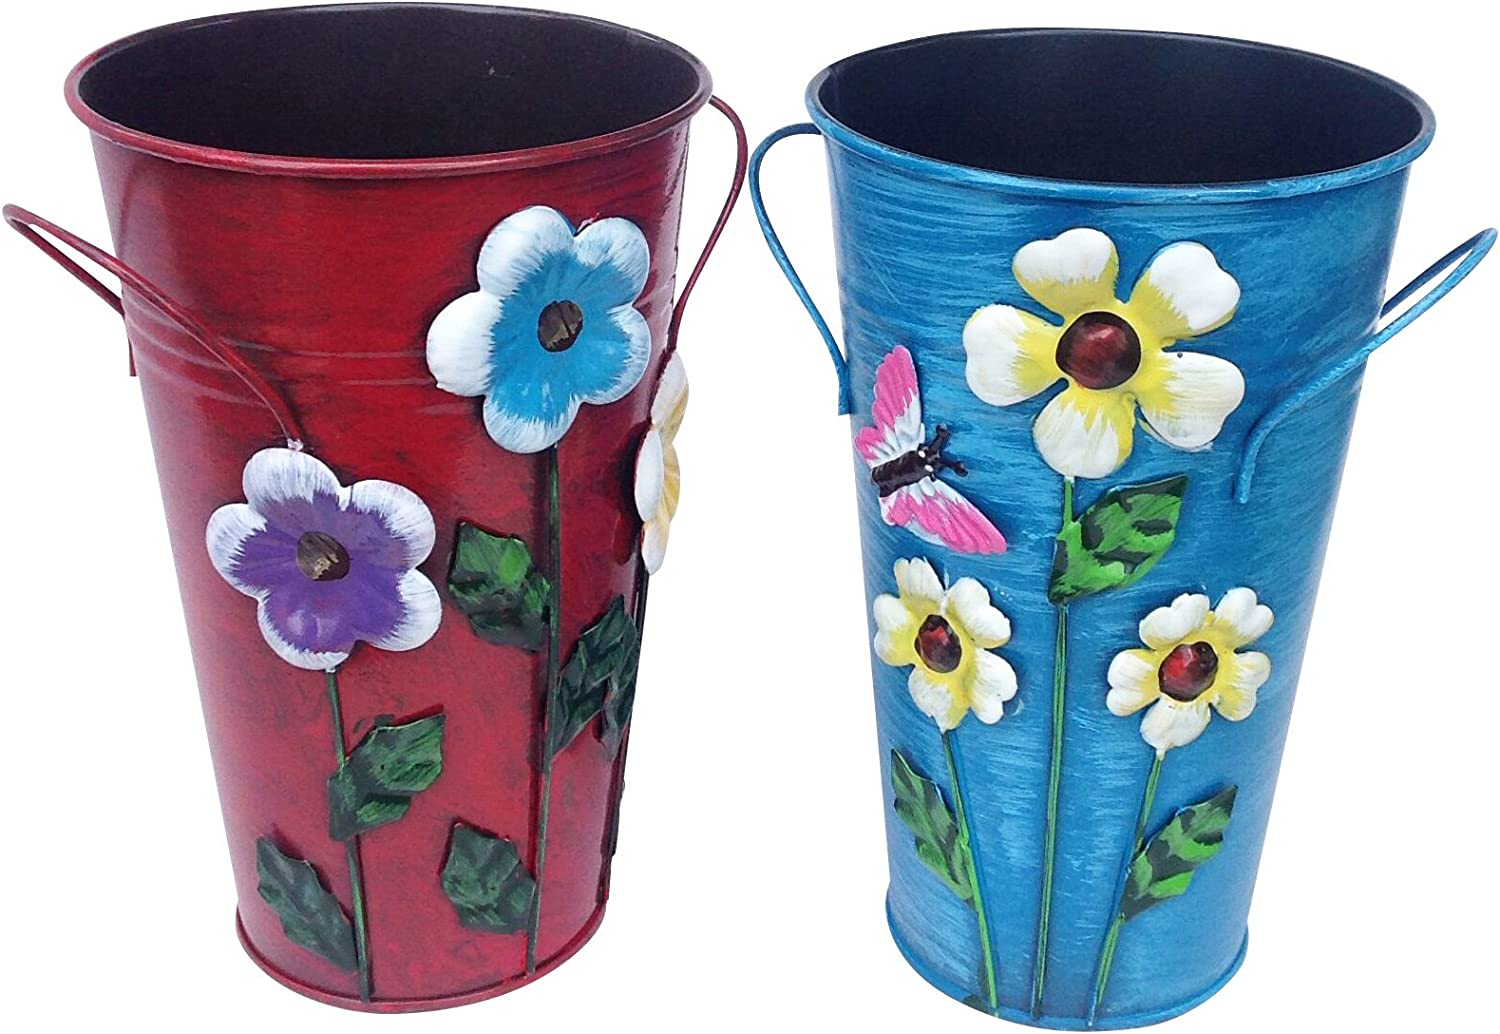 """Set of 2 Handmade Iron Vase or Planter or Holder with Raised Flowers Ladybug Butterfly Dragonfly Bee Birds (Red Floral and Blue Butterfly) Size 61/2"""" Tall X 4"""" Diameter Top X 3"""" Diameter Base"""